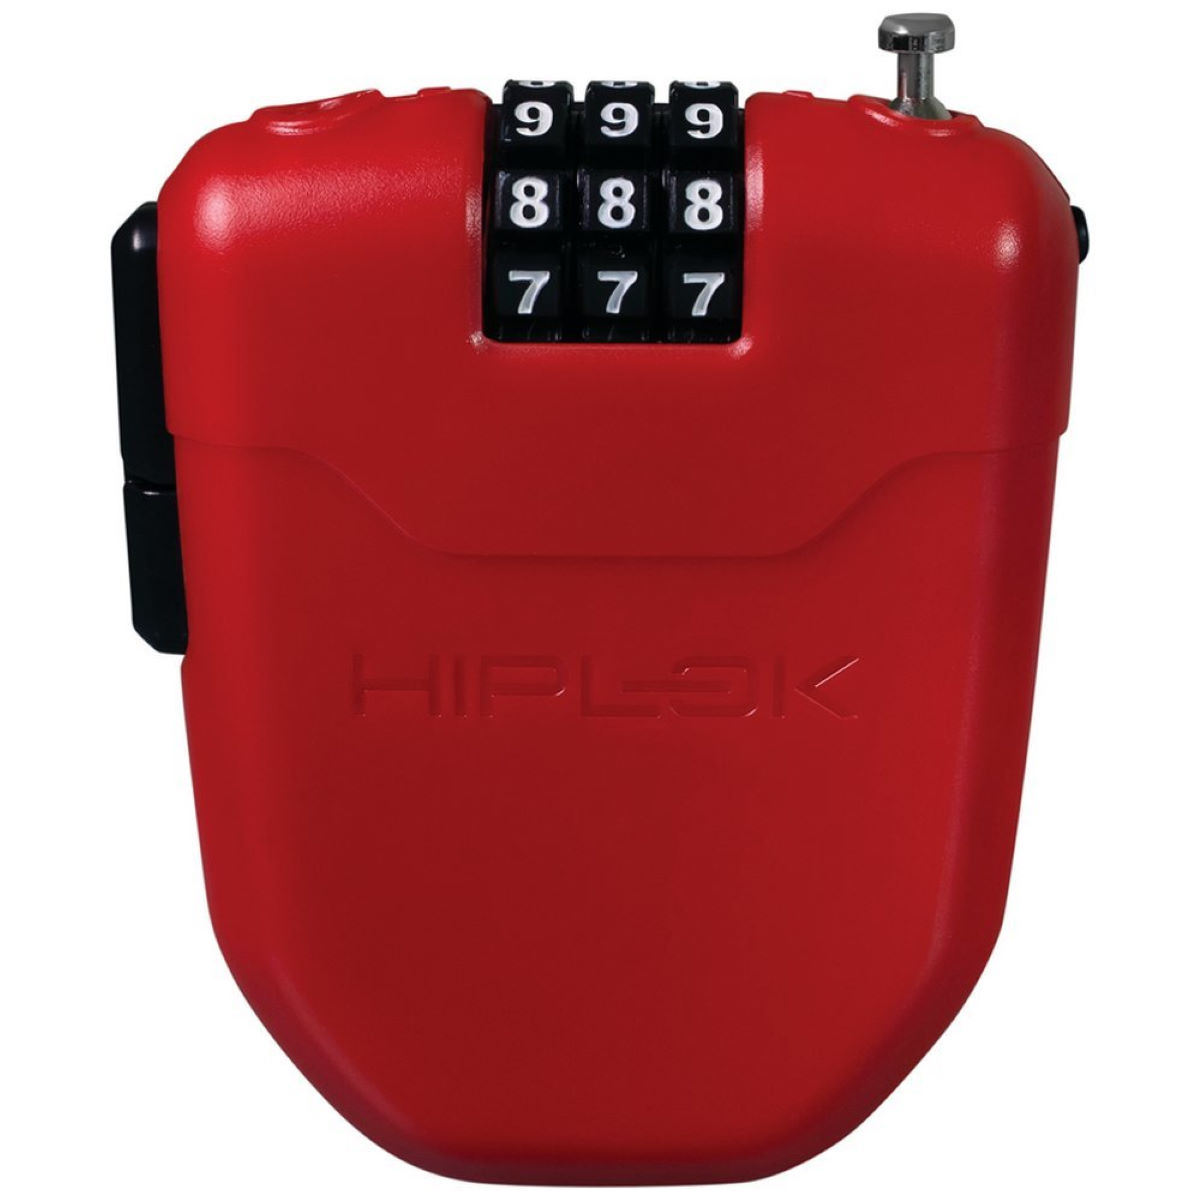 Hiplok Fx Wearable Combination Lock - One Size Red  Cable Locks